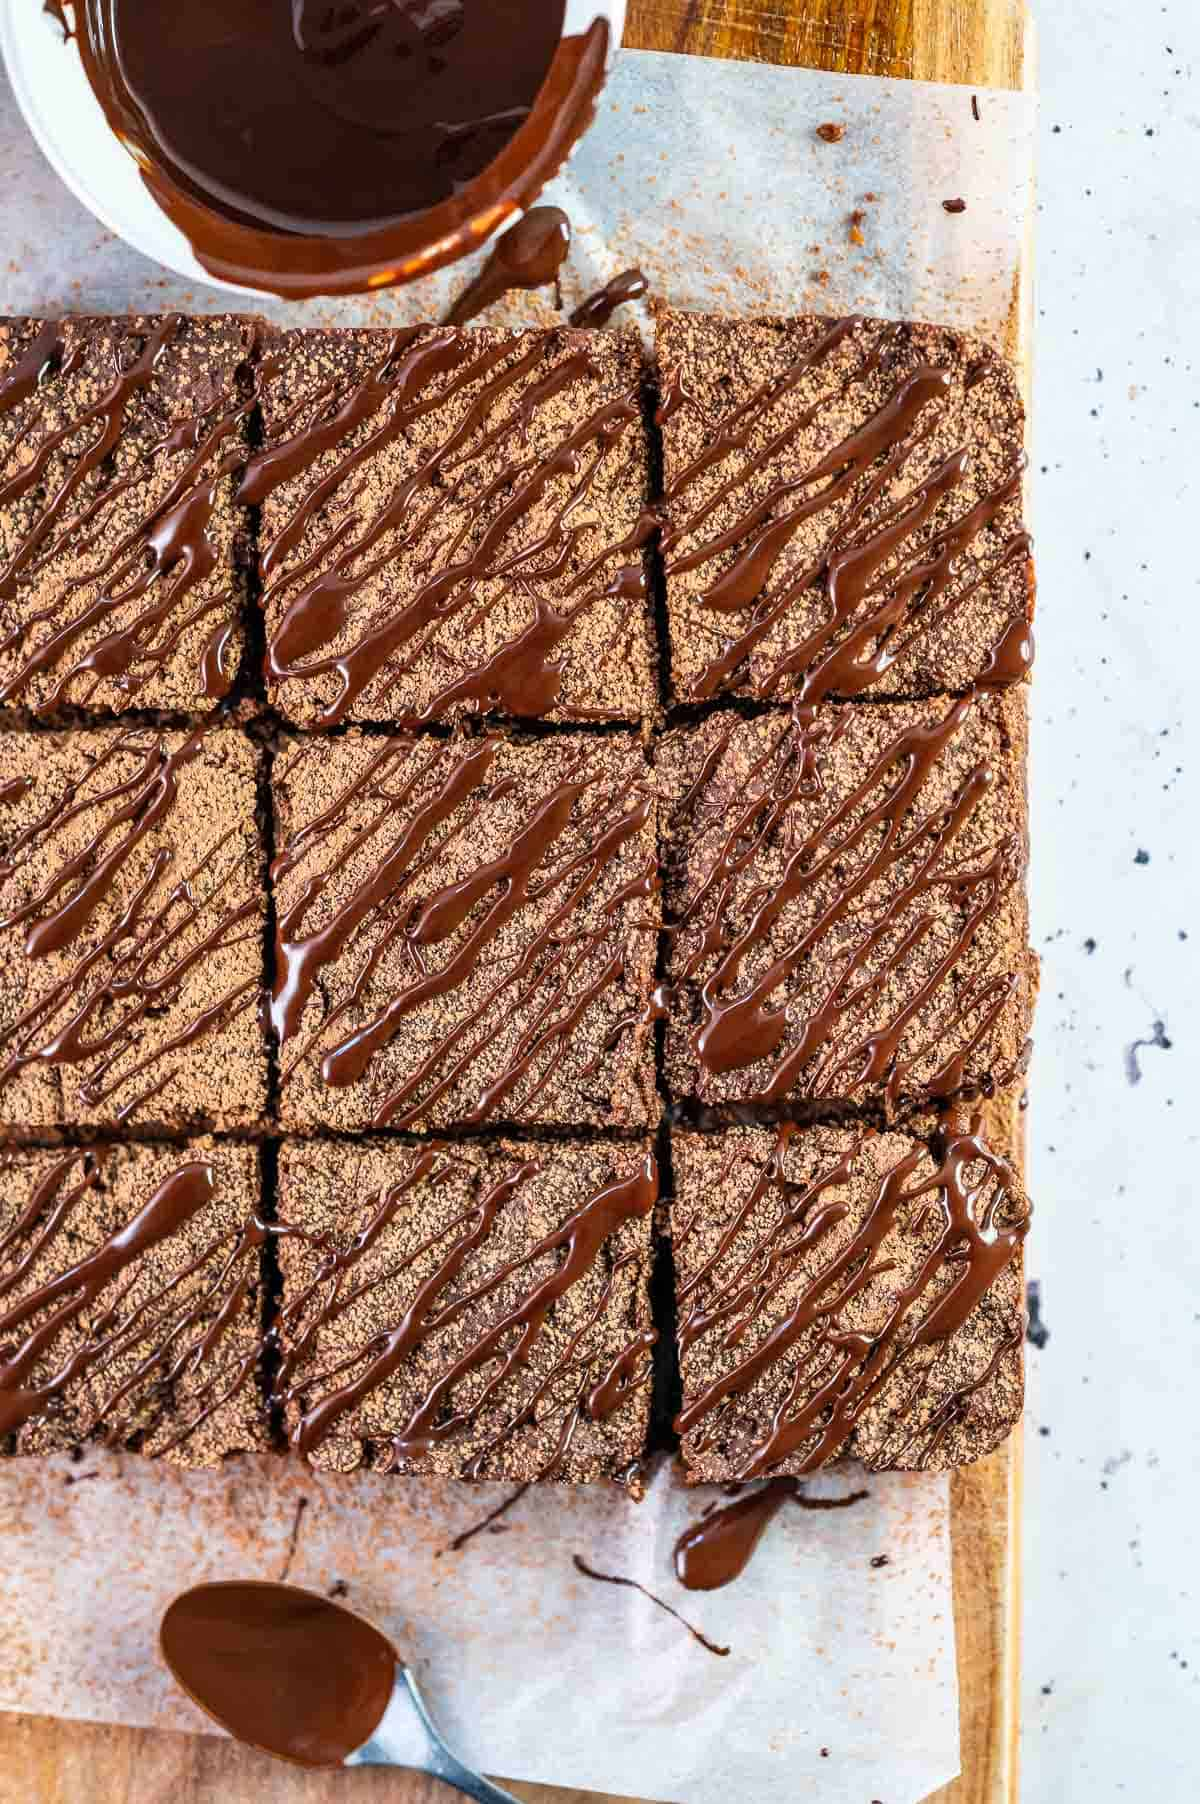 nine brownies on a board drizzled with chocolate